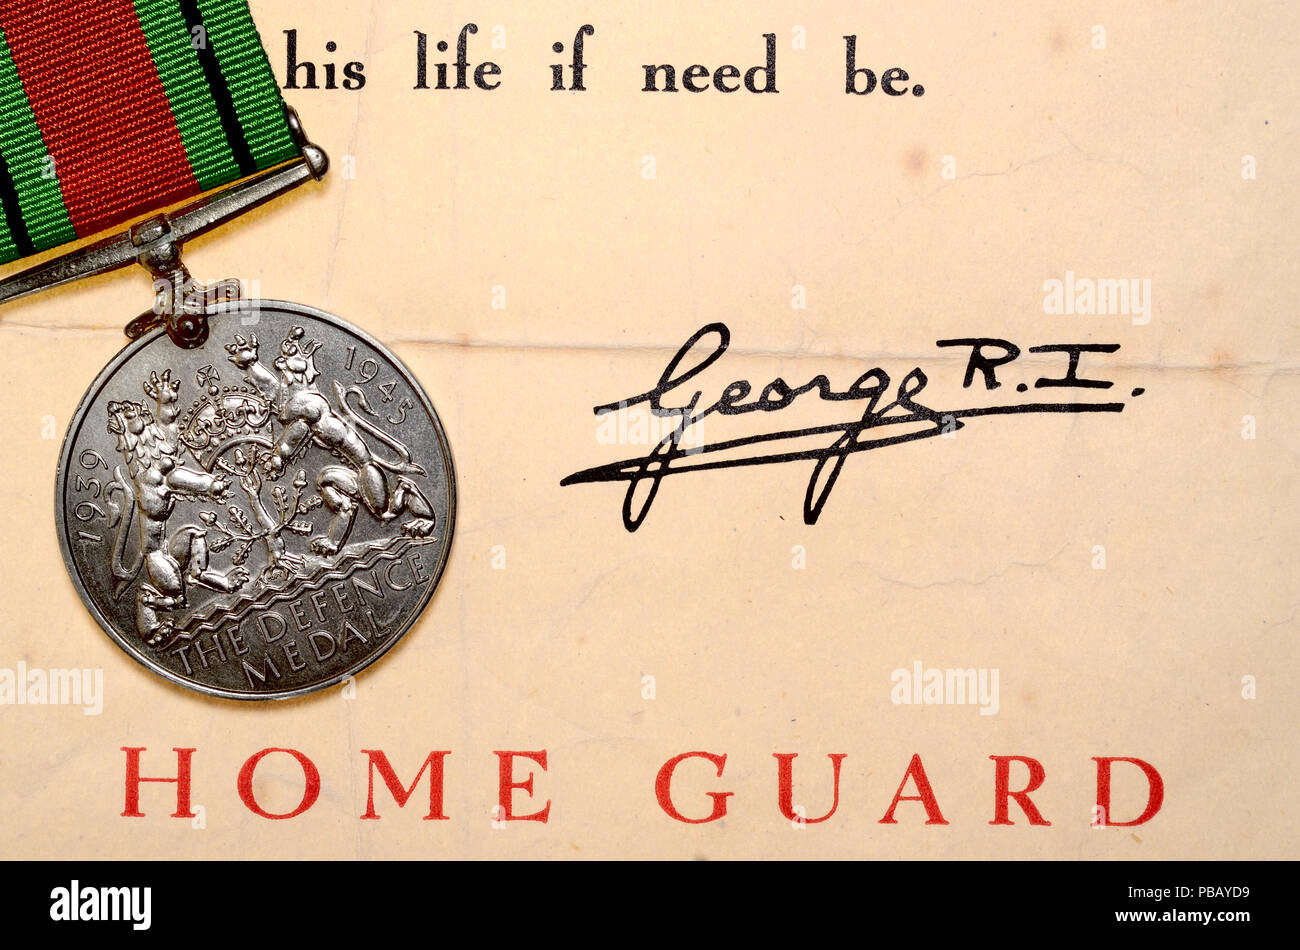 British WW2 Defence Medal with a letter about service in the Home Guard - awarded to subjects of the British Commonwealth for both non-operational mil - Stock Image